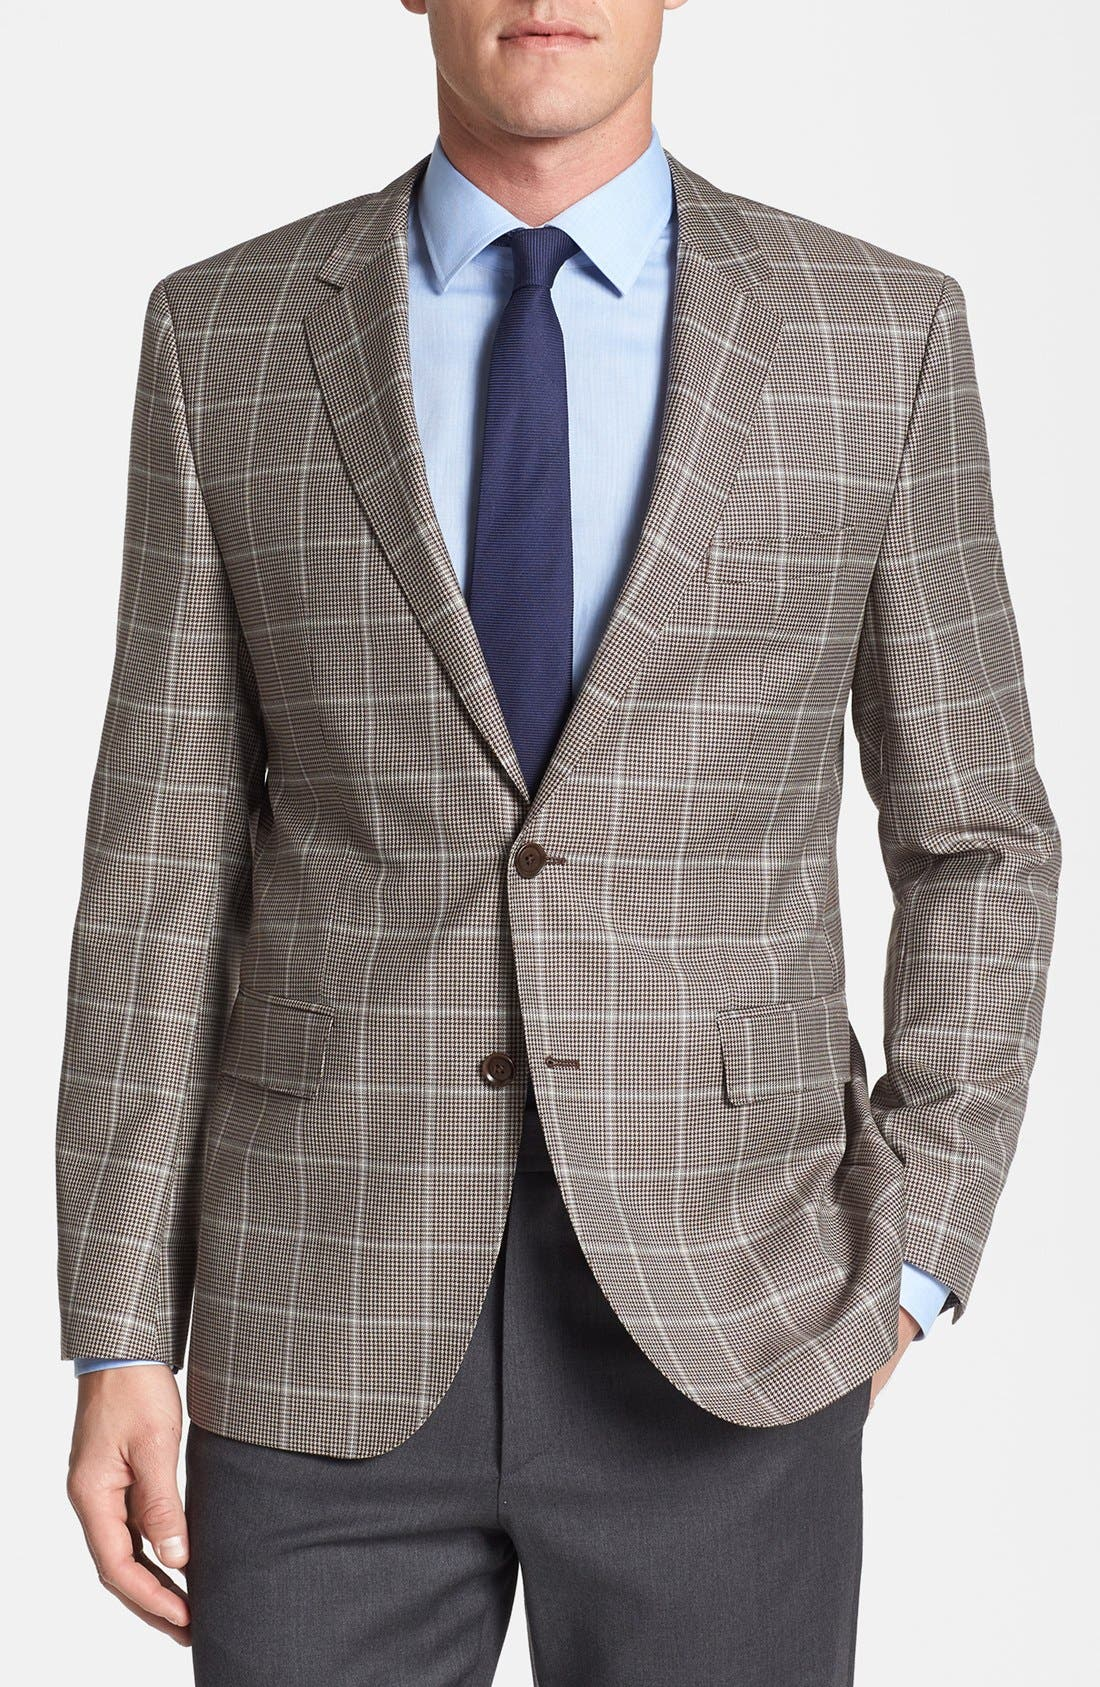 Main Image - BOSS HUGO BOSS 'The Smith' Trim Fit Plaid Sportcoat